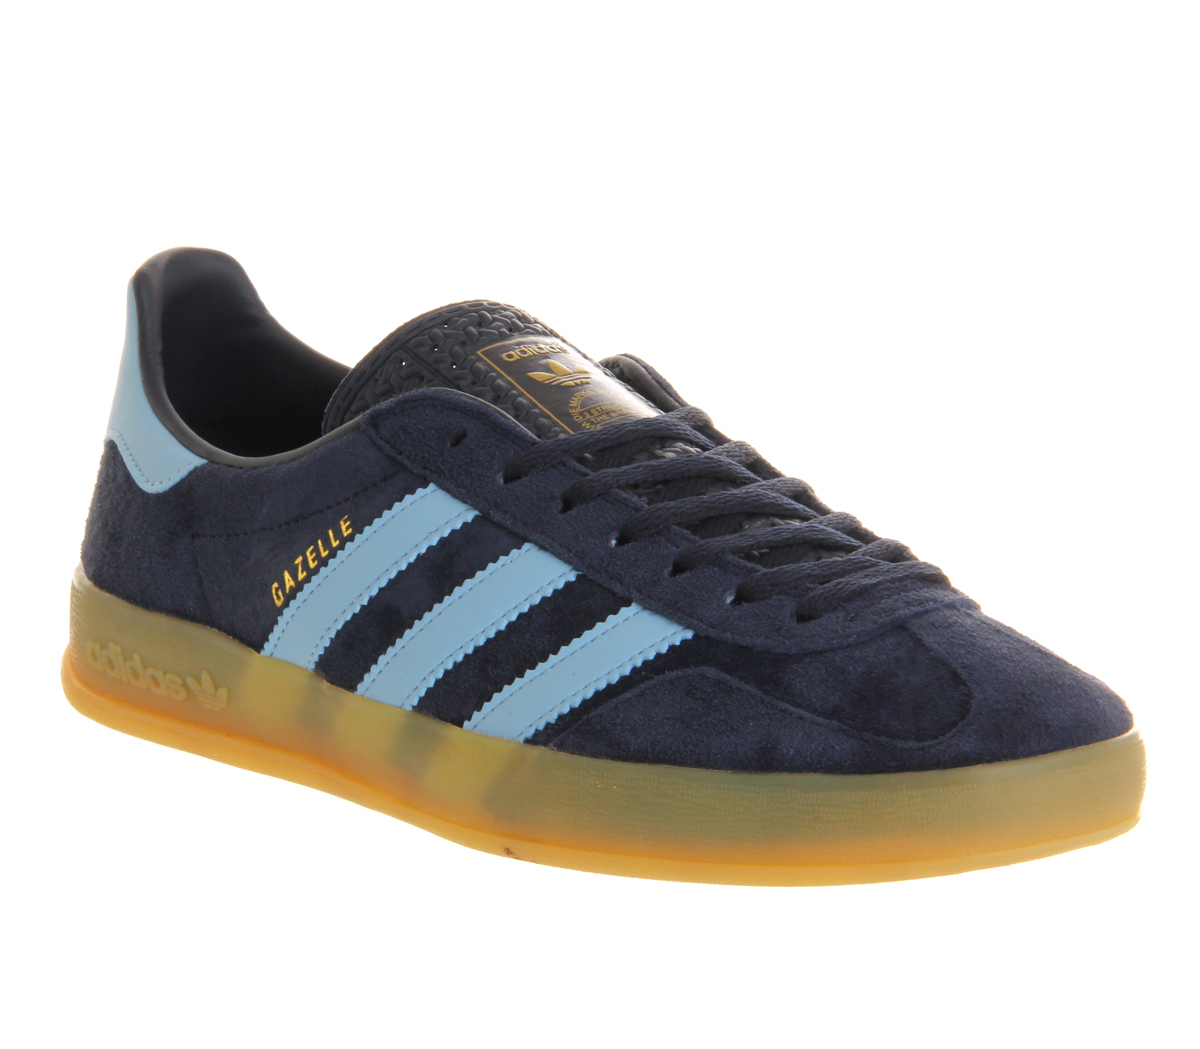 adidas gazelle indoor new navy argentina blue in blue for. Black Bedroom Furniture Sets. Home Design Ideas